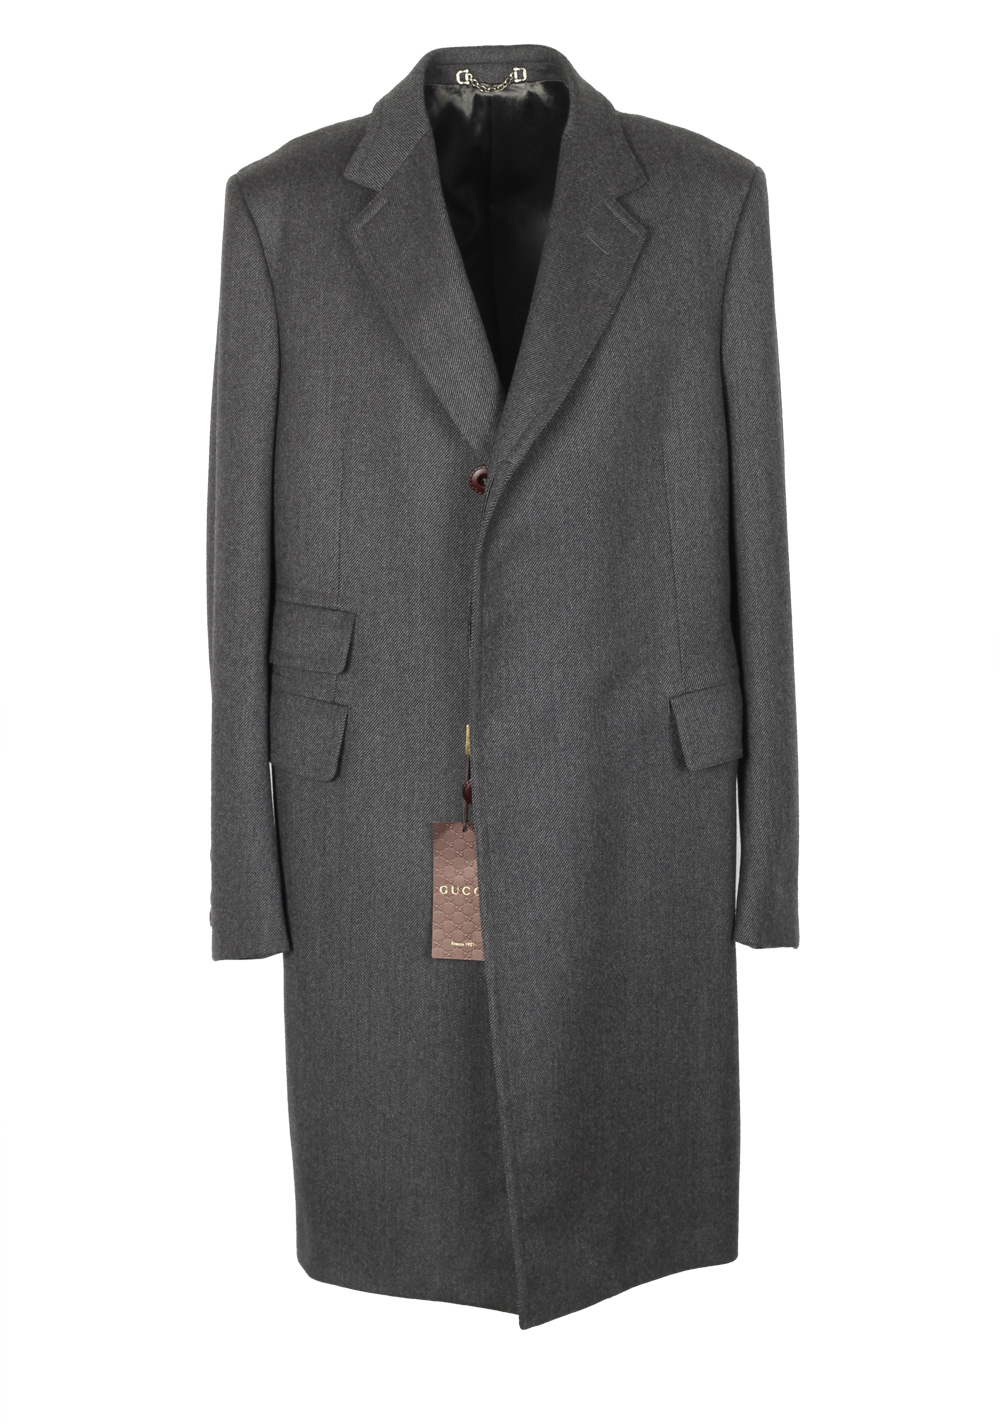 Gucci Gray Overcoat Size 52 / 42R U.S. In Wool | Costume Limité